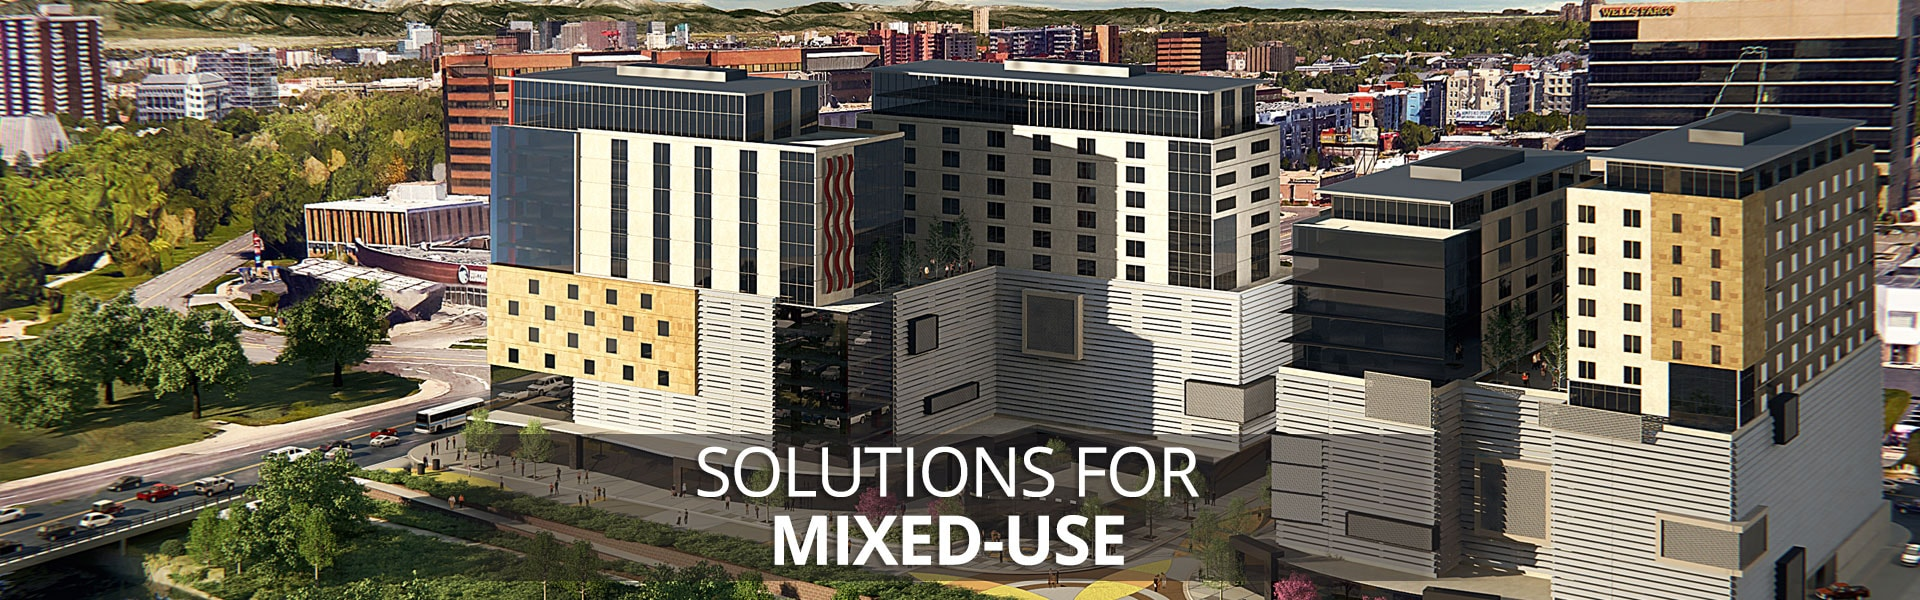 Mixed-Use Architects in Denver Colorado